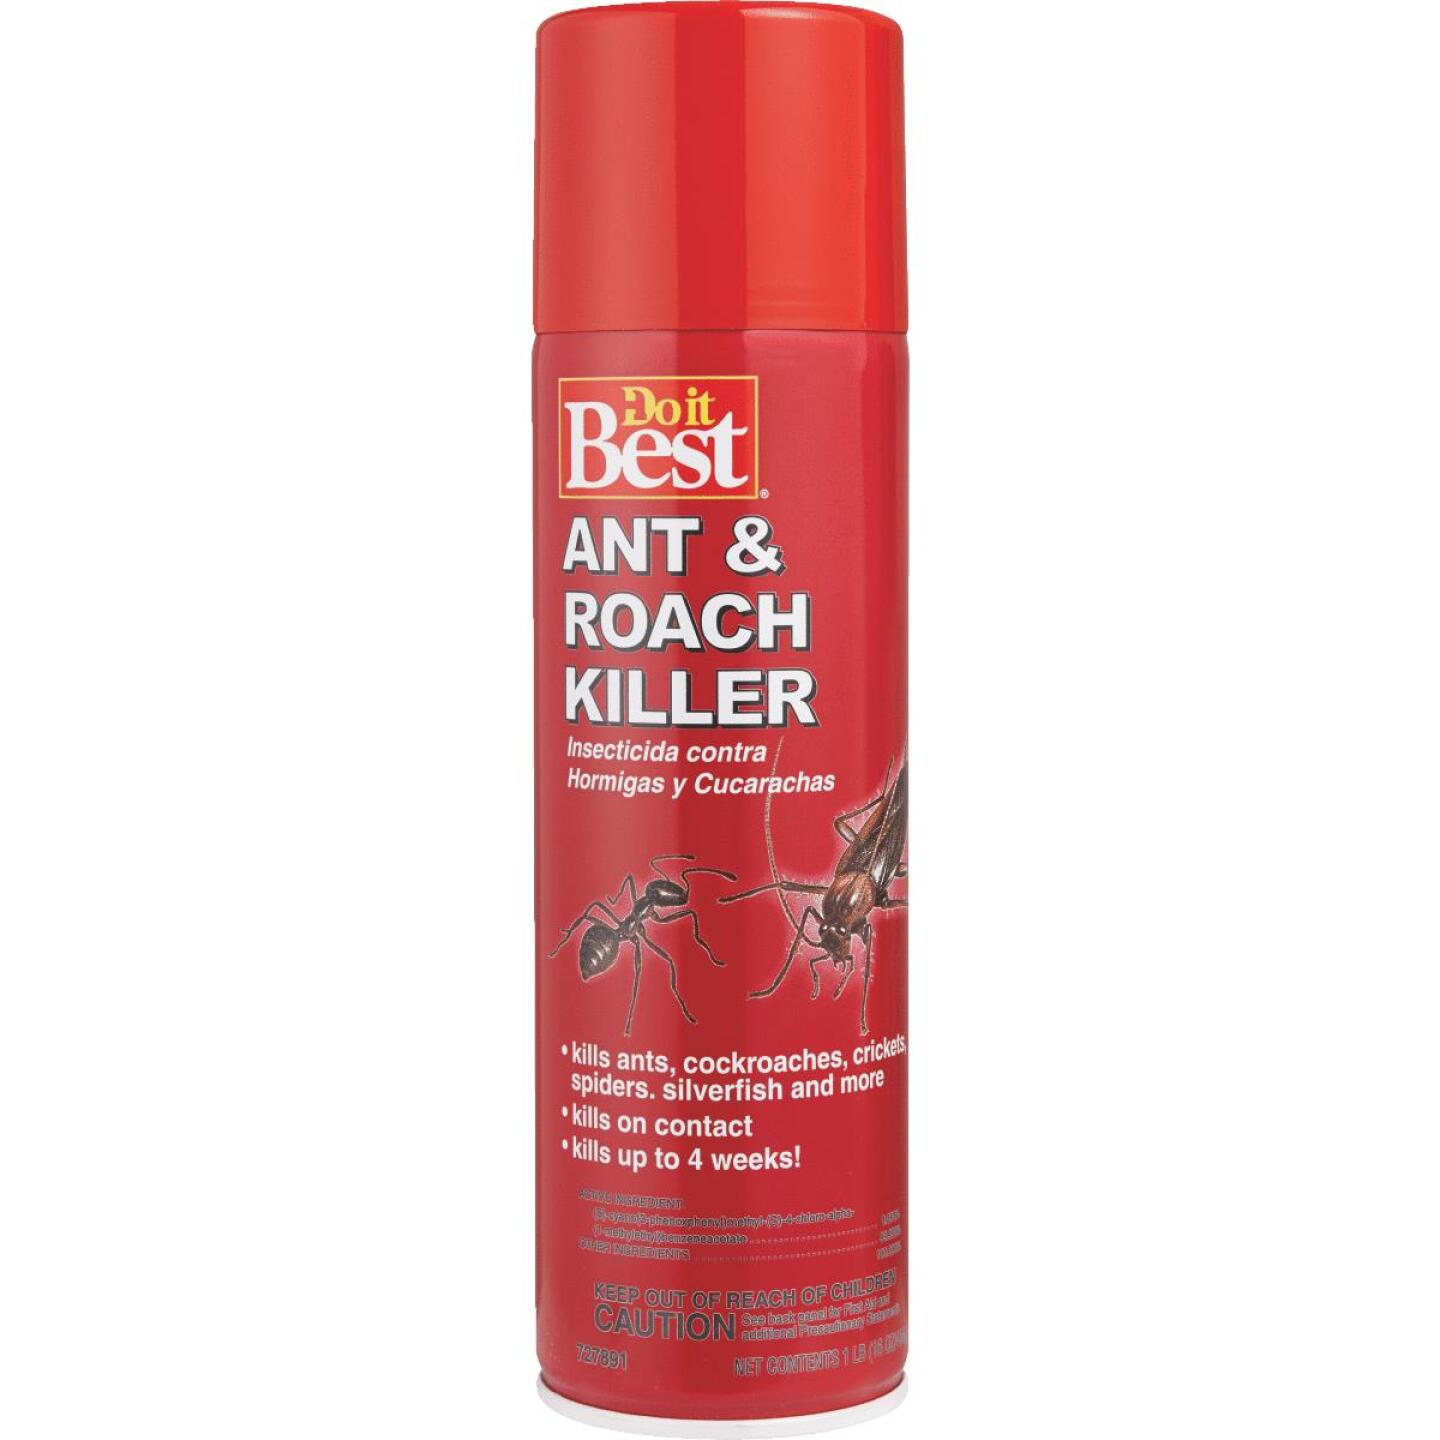 Do it Best 16 Oz. Aerosol Spray Ant & Roach Killer Image 2